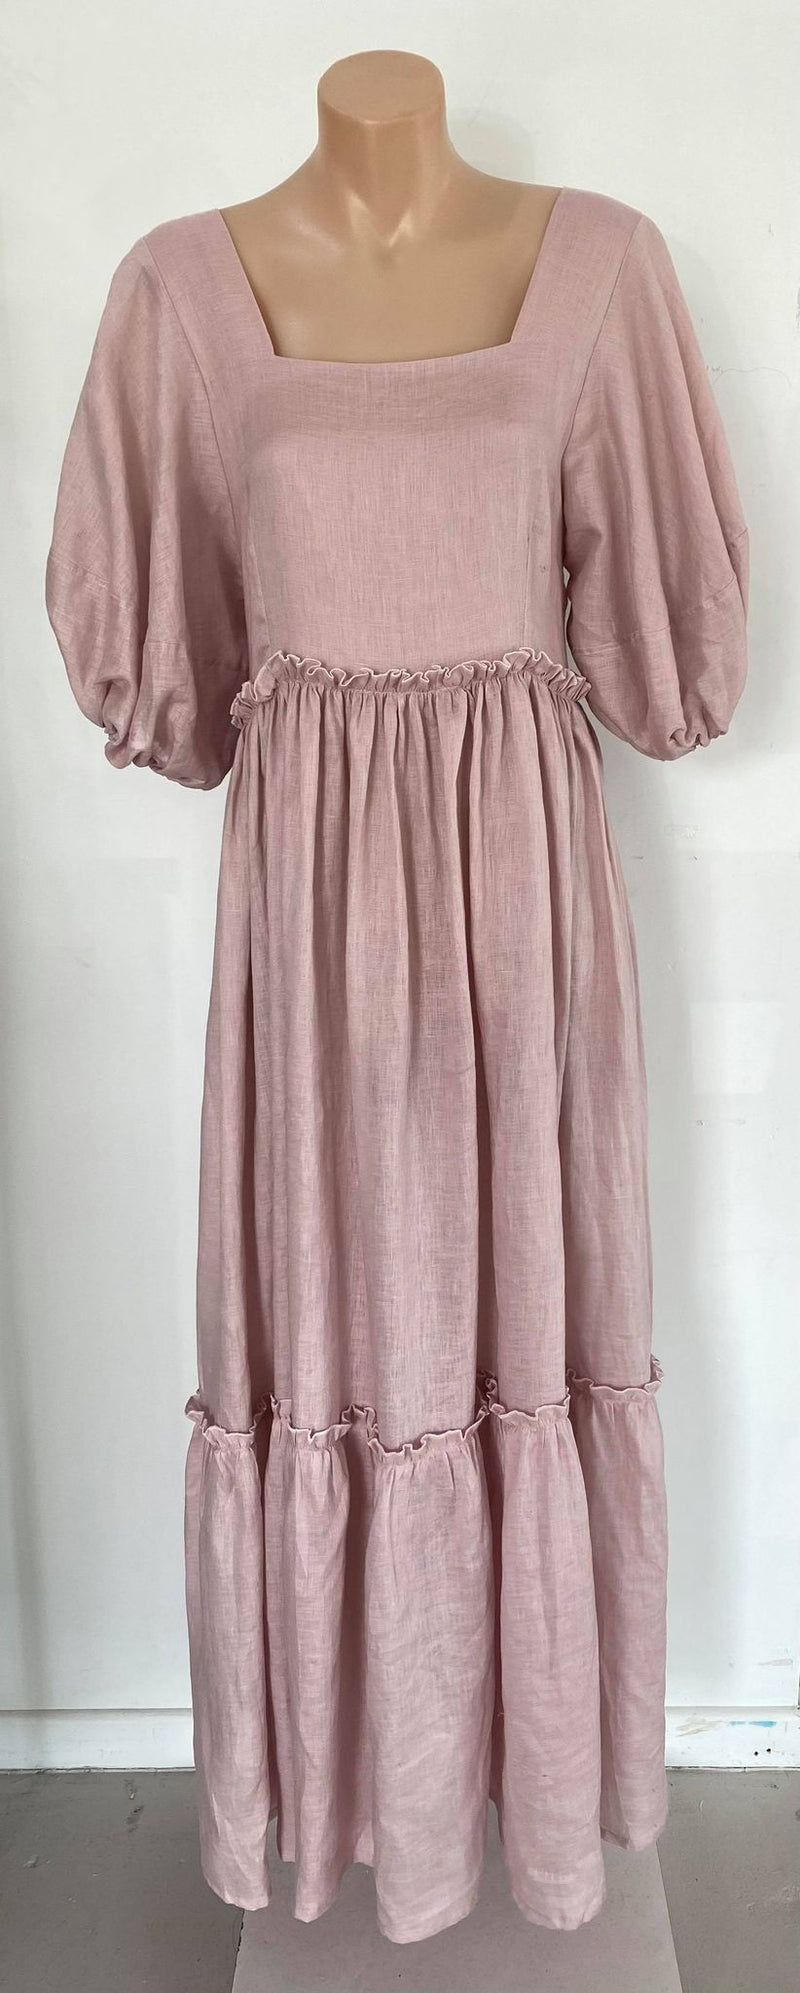 Annette Daley Puff Sleeve Maxi Dress - Rose